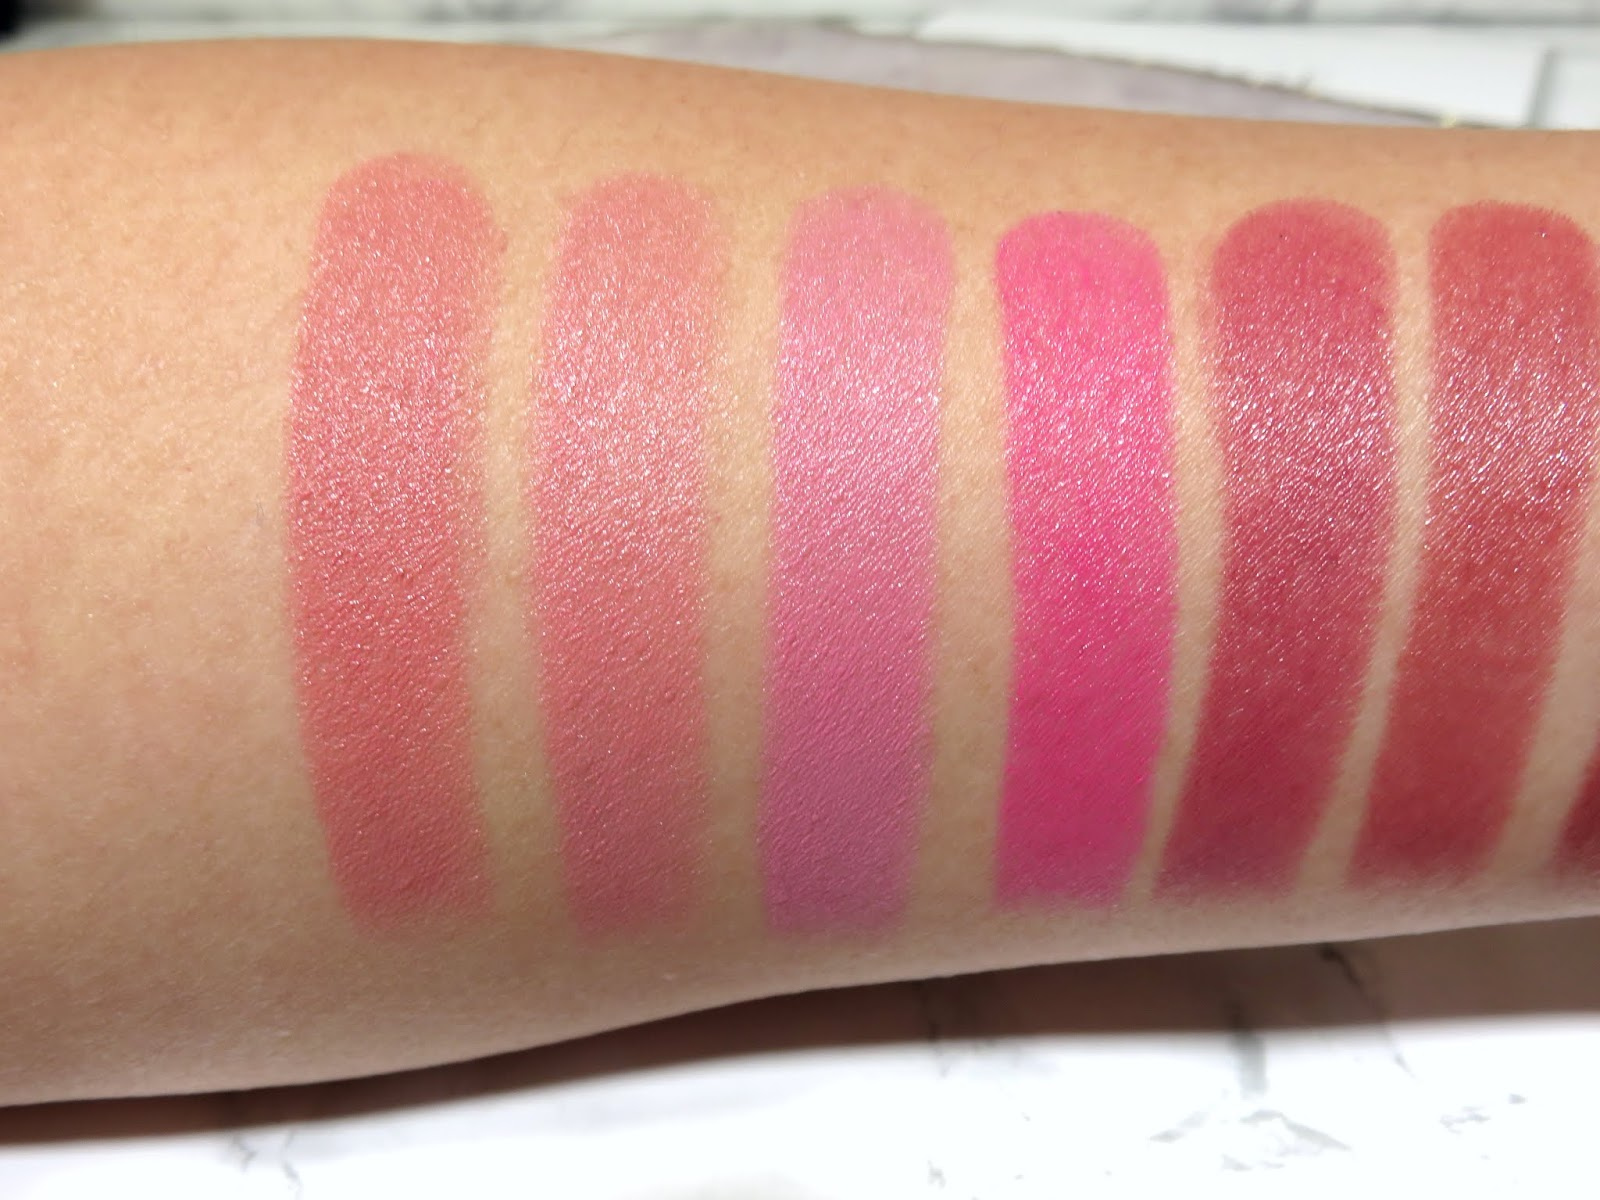 House of Sillage Diamond Powder Satin Lipstick Swatches